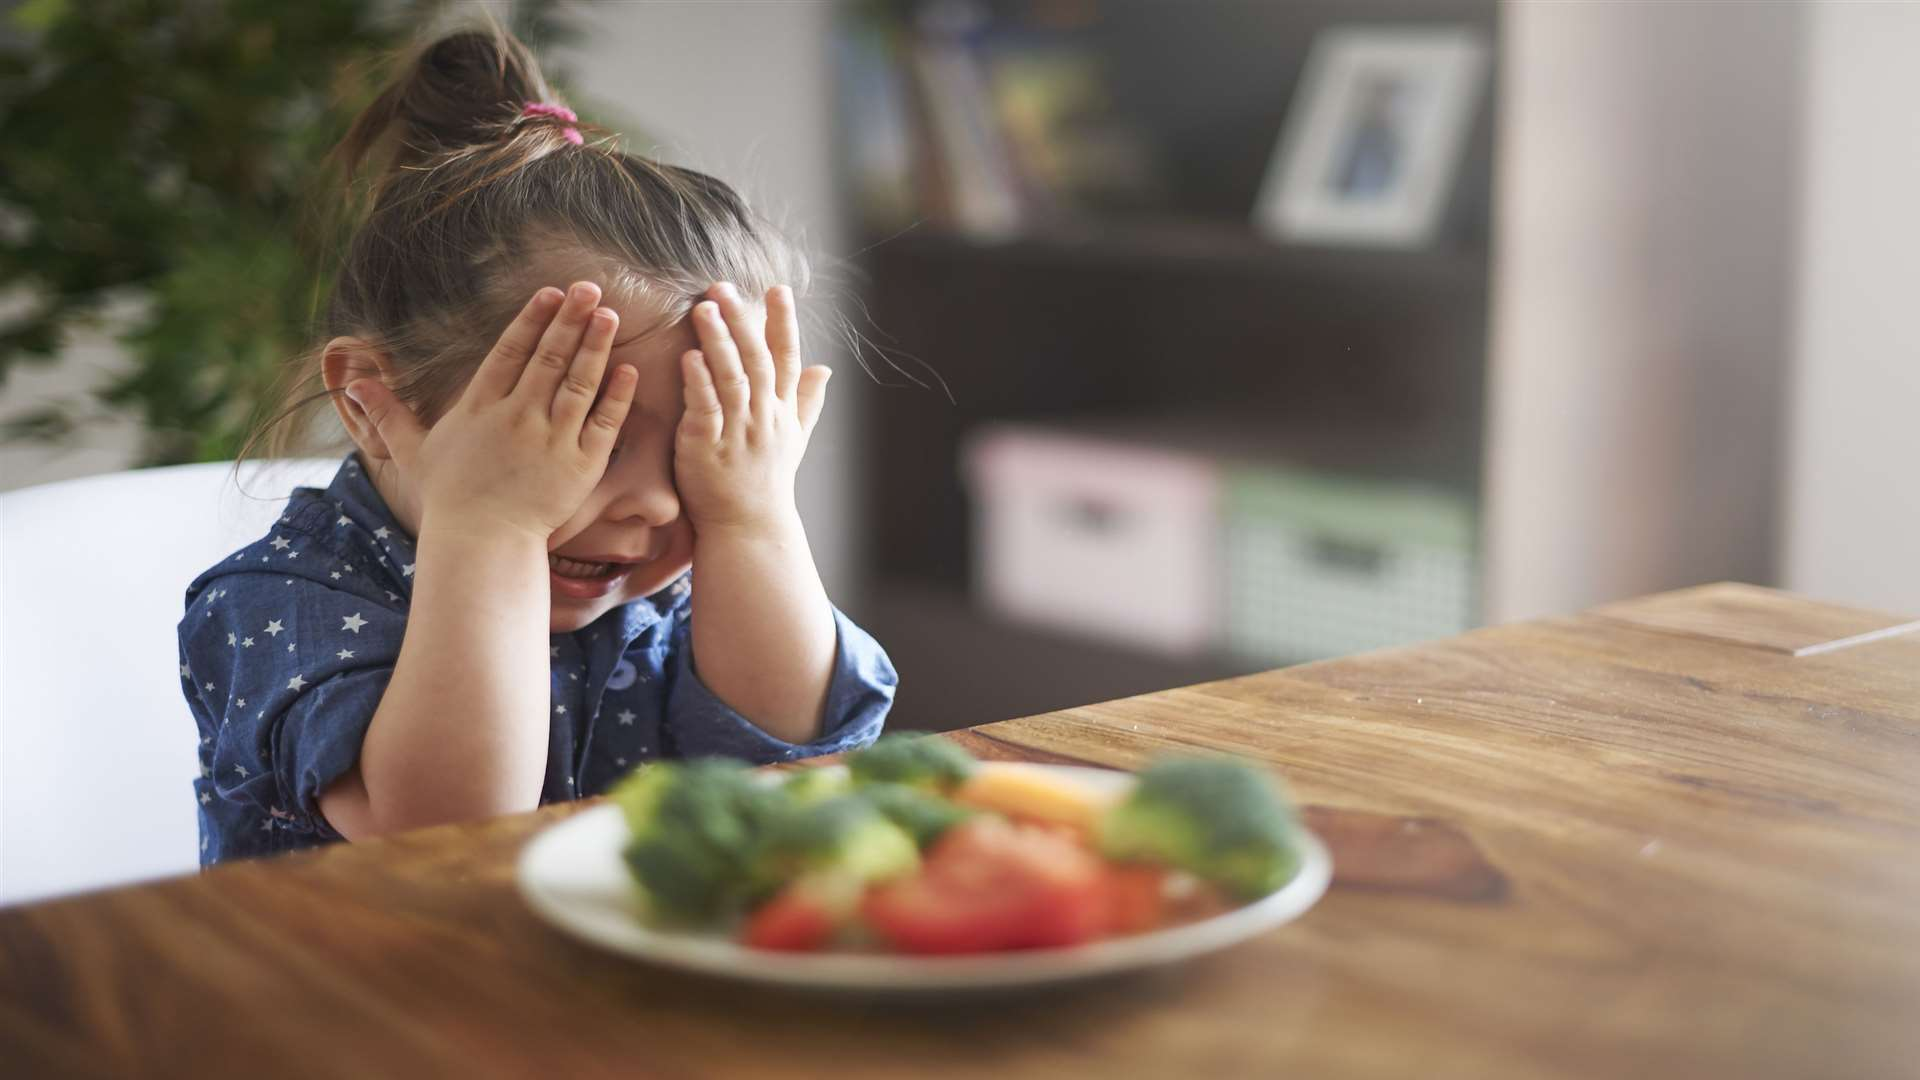 Getting children to eat fruit and vegetables can be really tough for parents.